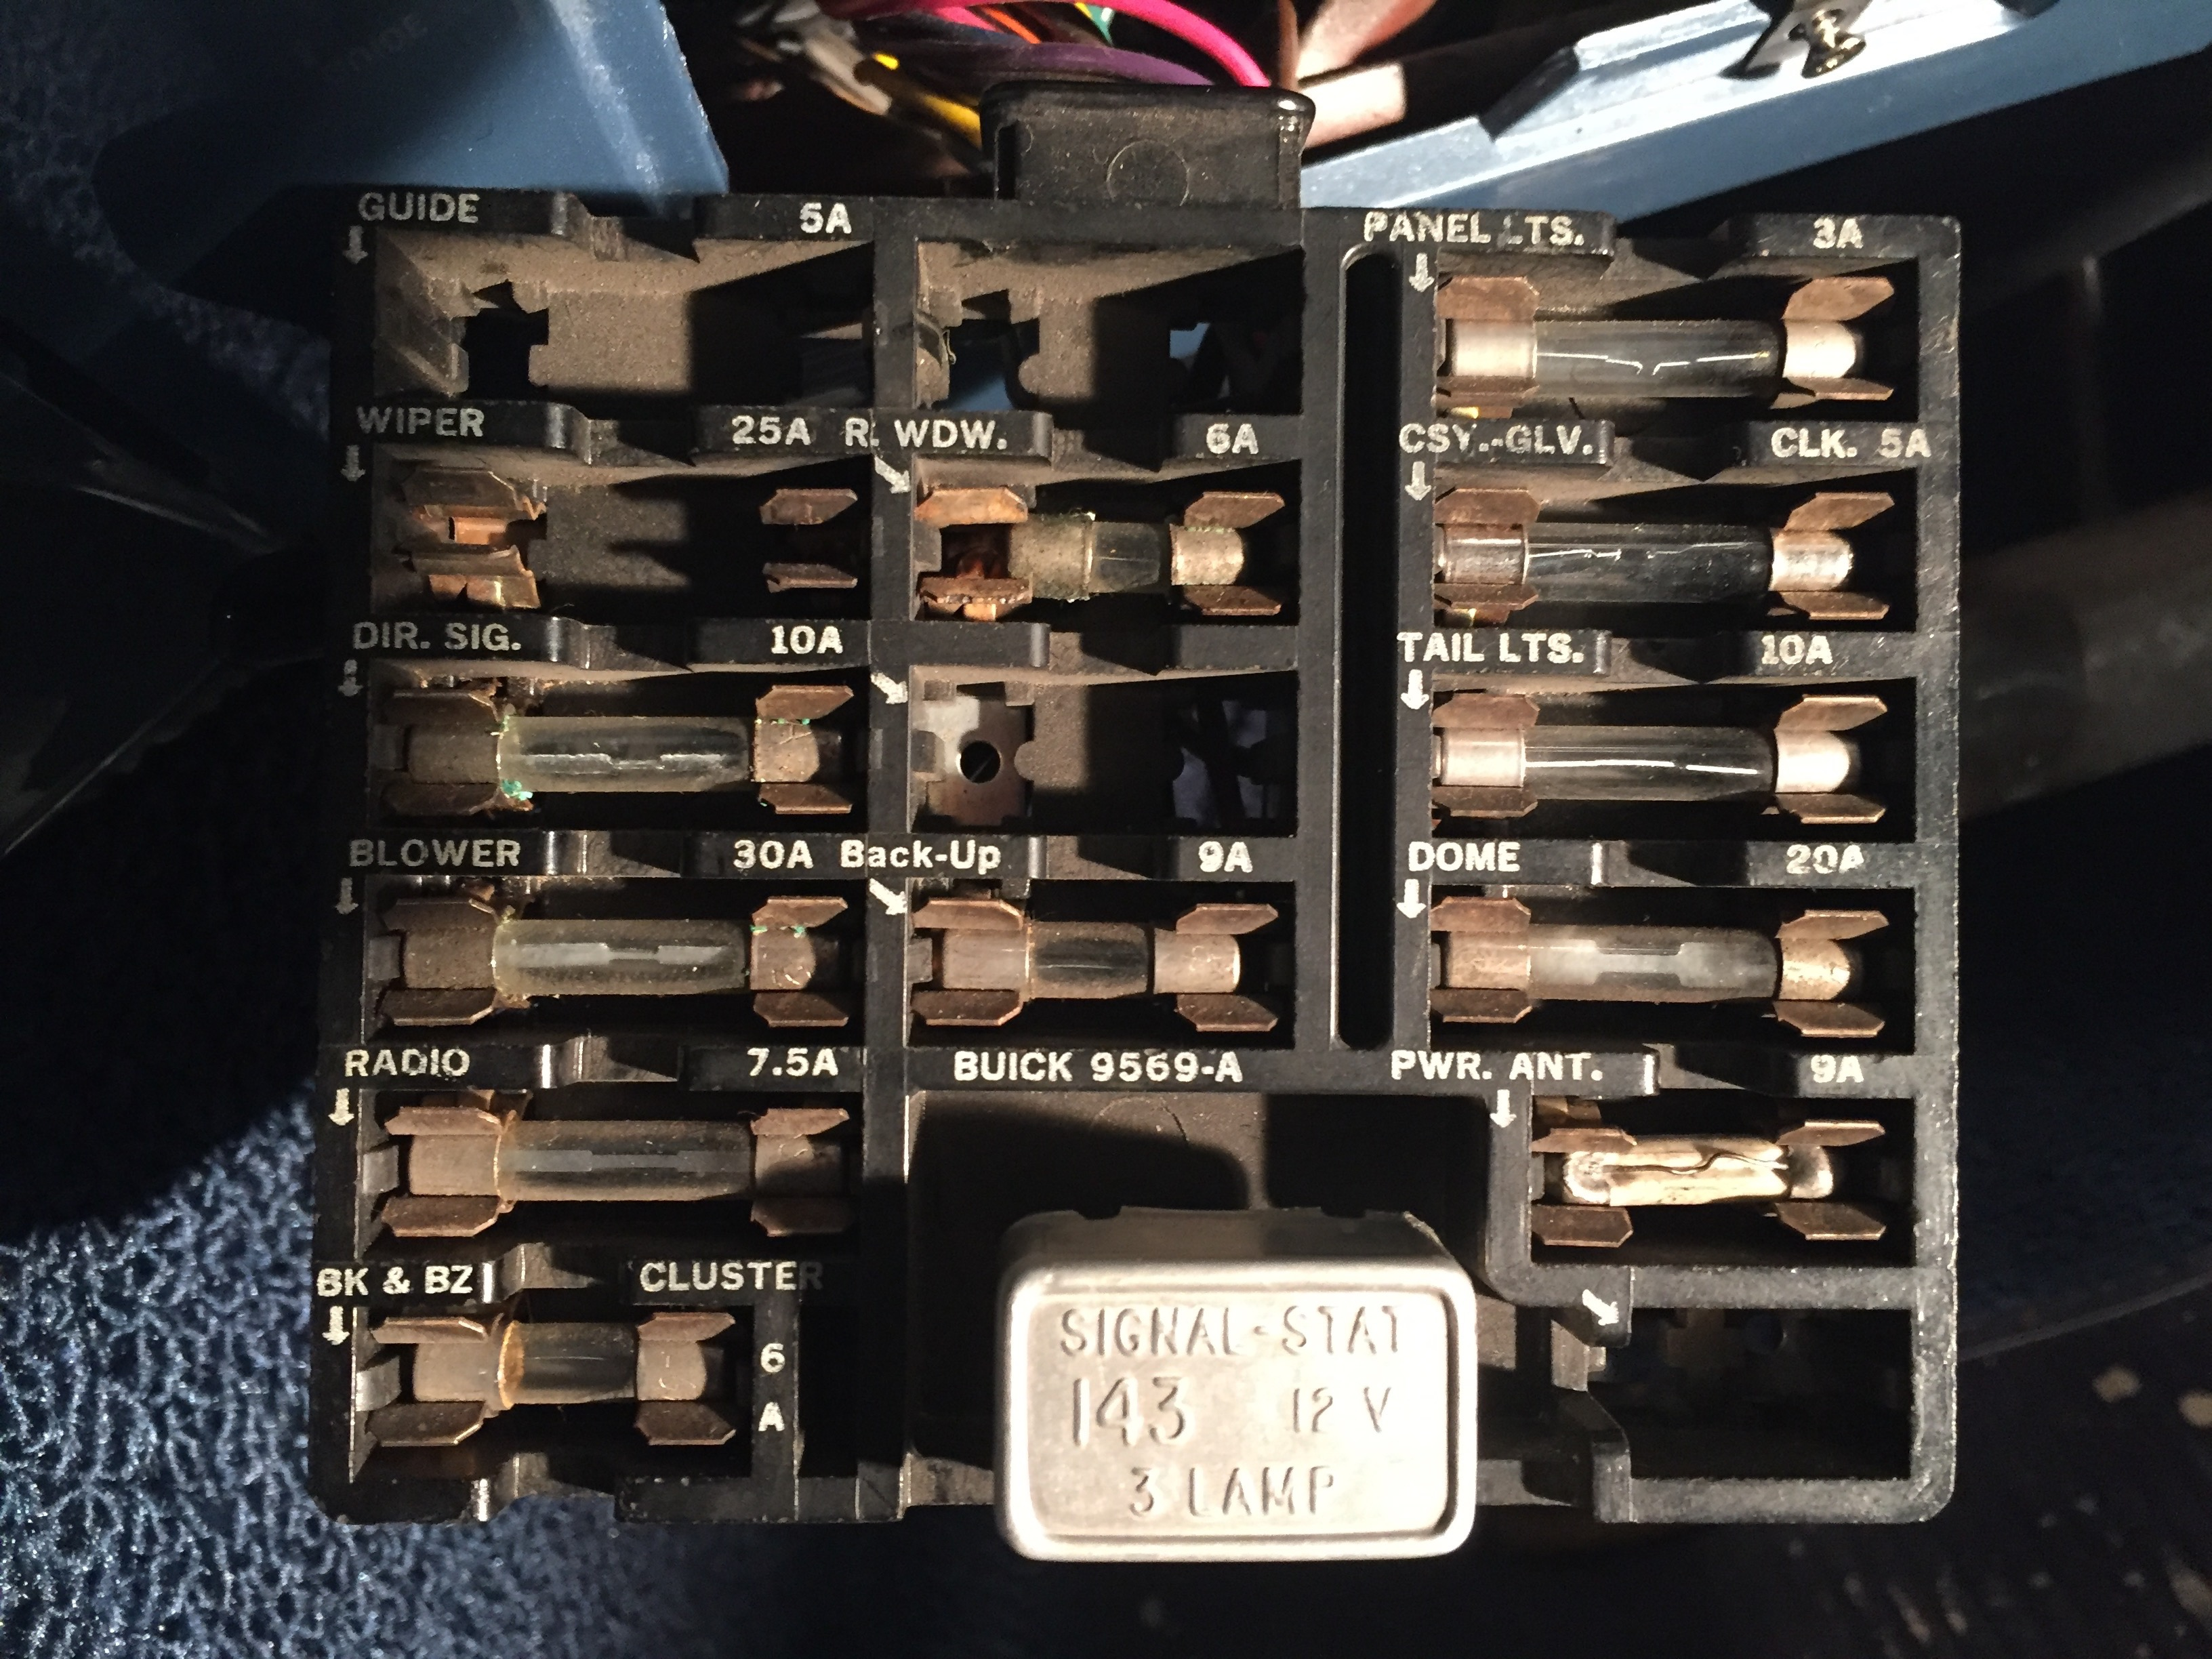 64 Riv  Remove Panel From Fuse Box